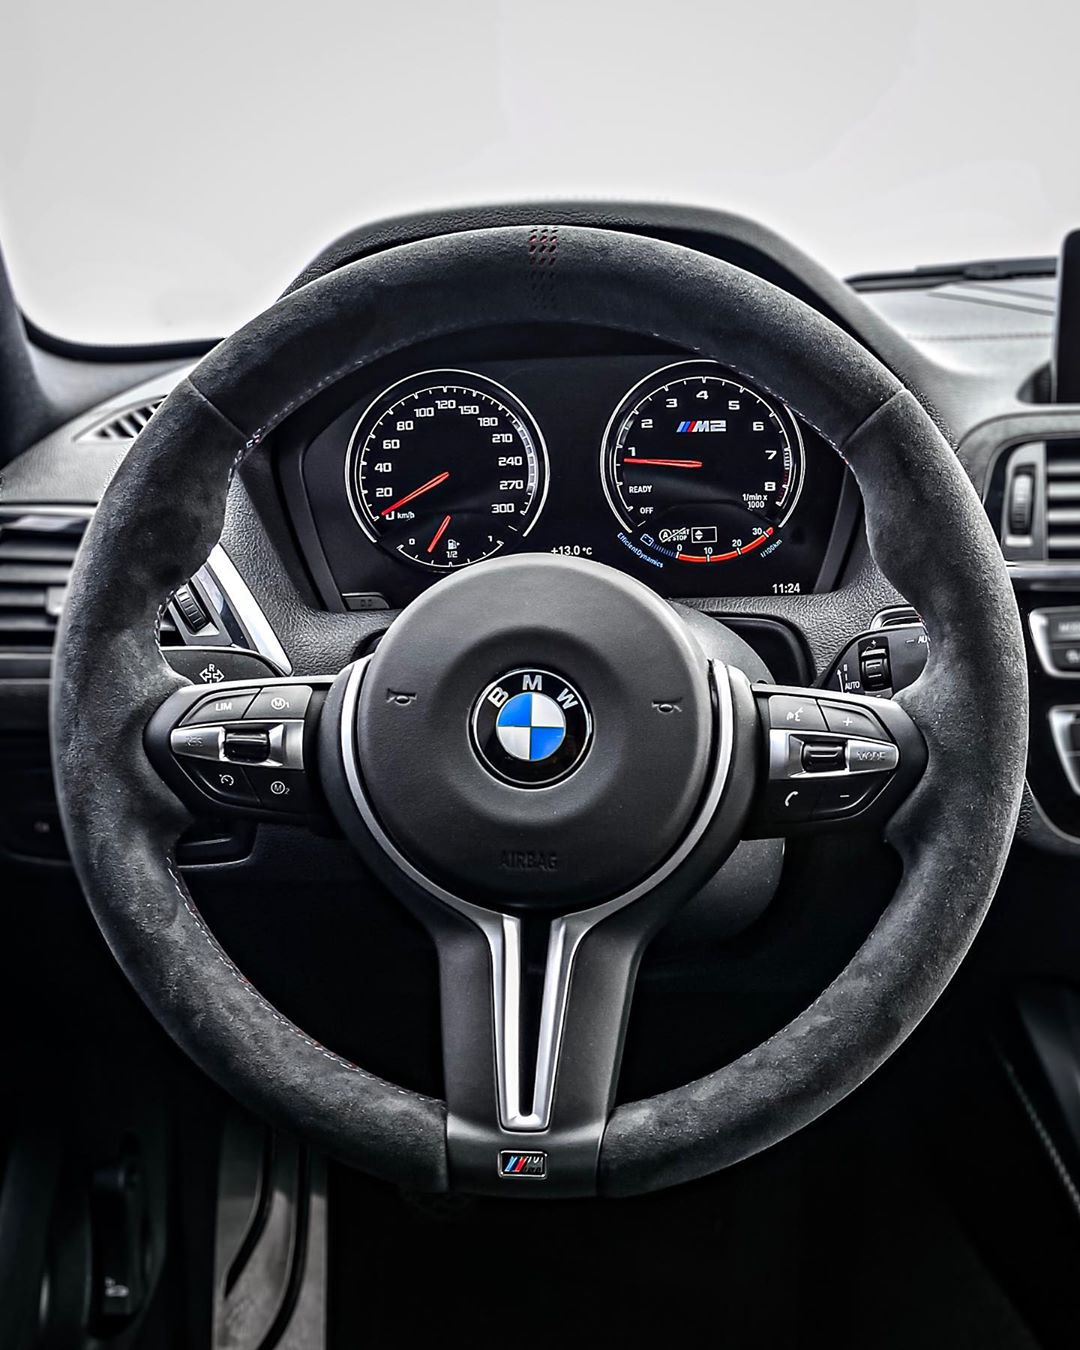 😱😳…///M2 CS is out! Remember we had 370 hp in our manual M2 LCI…now this CS is 450 hp & 550 Nm, as it's a similar setup as our former M4 Competition it will do close to 500 hp😜 #bmwm #bmwm2 #bmwm2cs #m2cs #m2csl #m2competition #bmwm2competition #automanntv